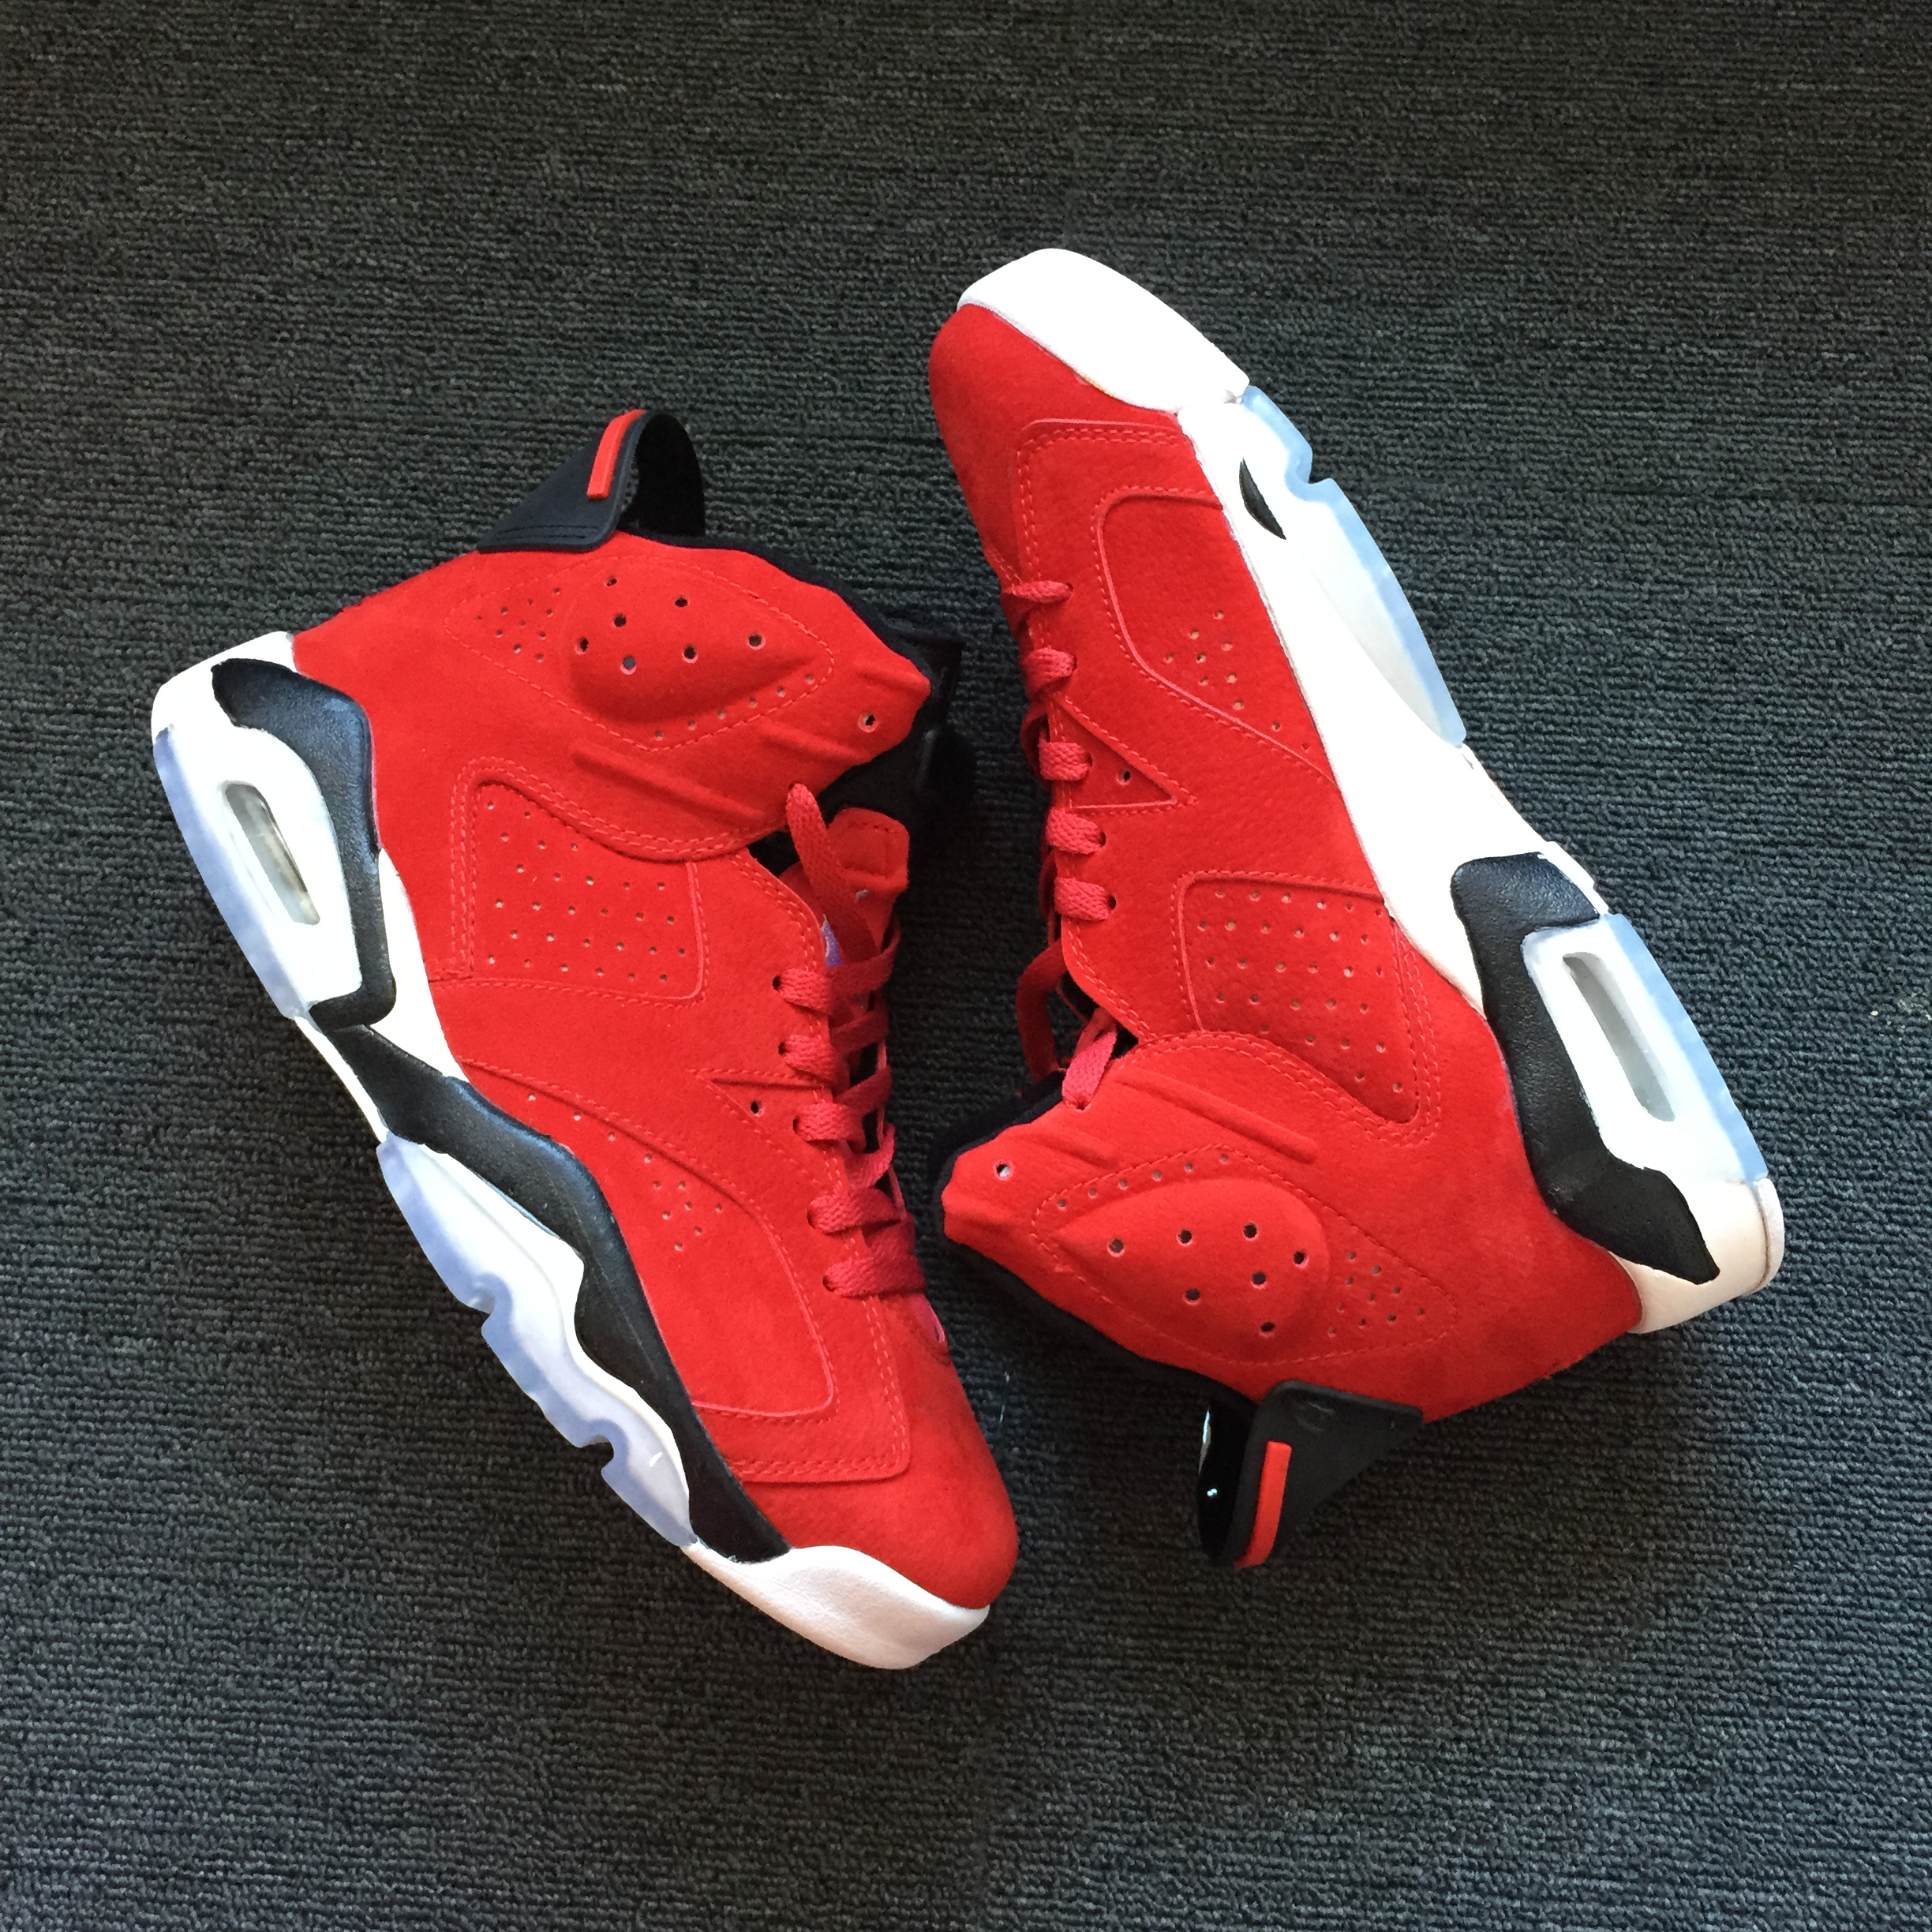 New Air Jordan 6 Deer Skin Red Black White Shoes